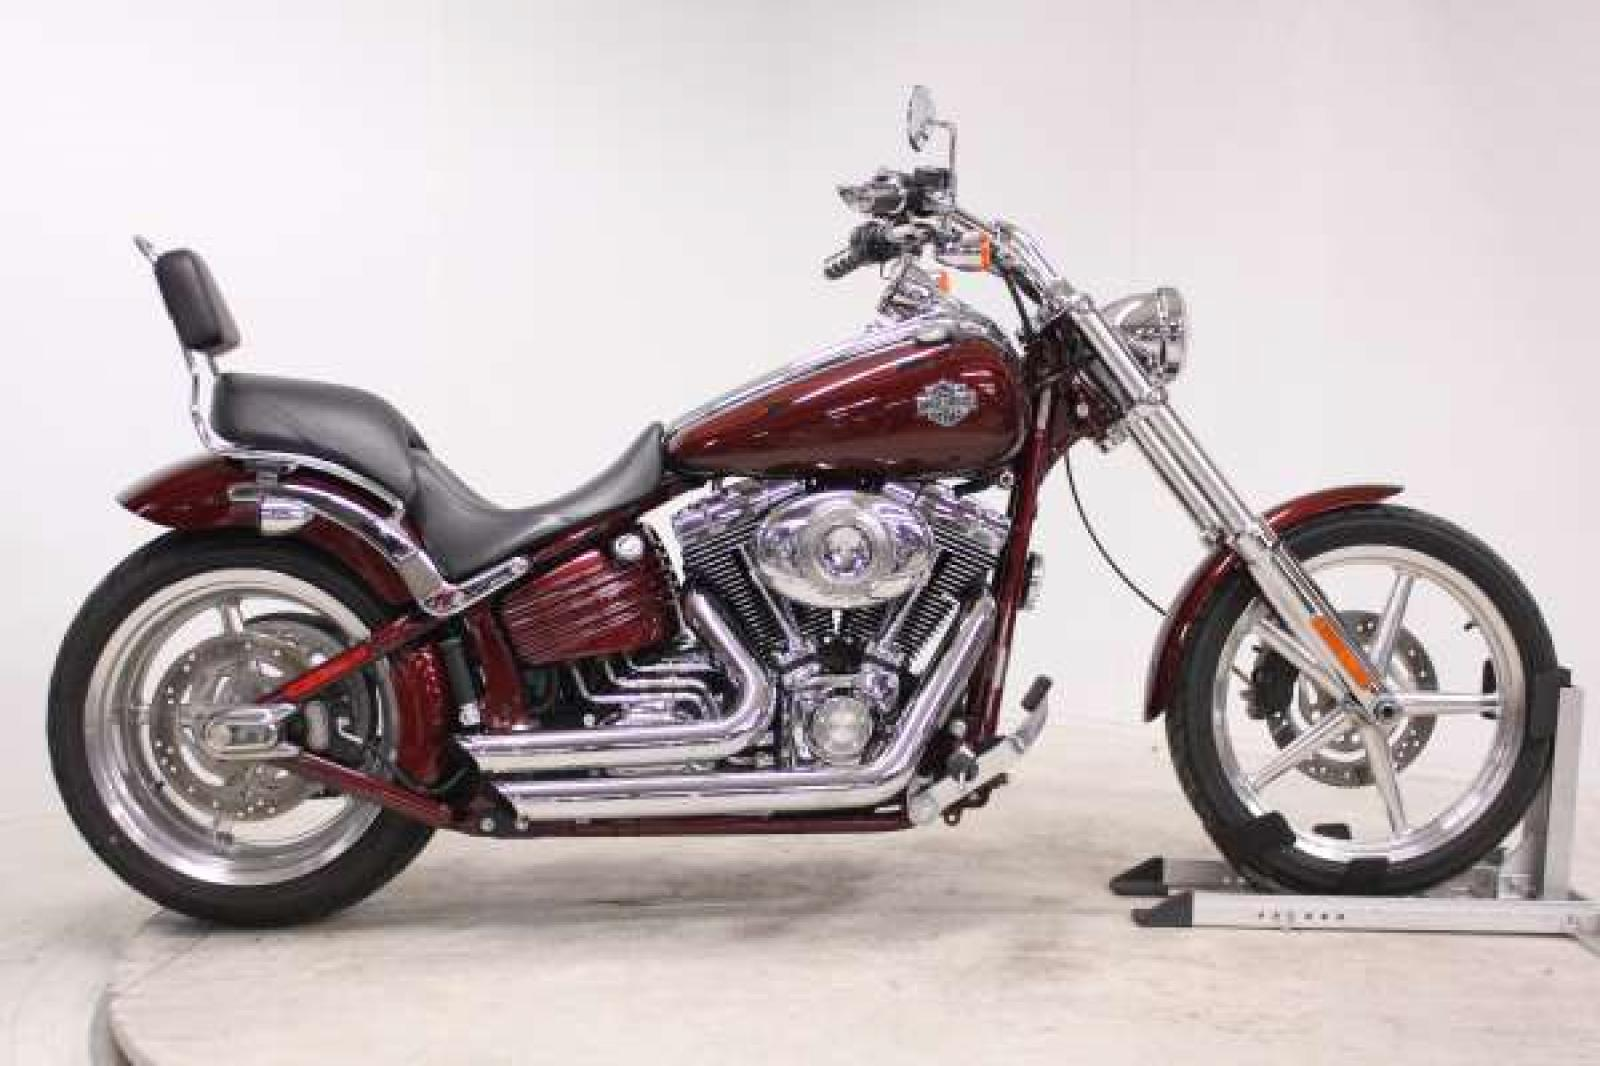 2009 harley davidson fxcwc rocker c specifications and autos post Harley Manual Gear best harley service manual